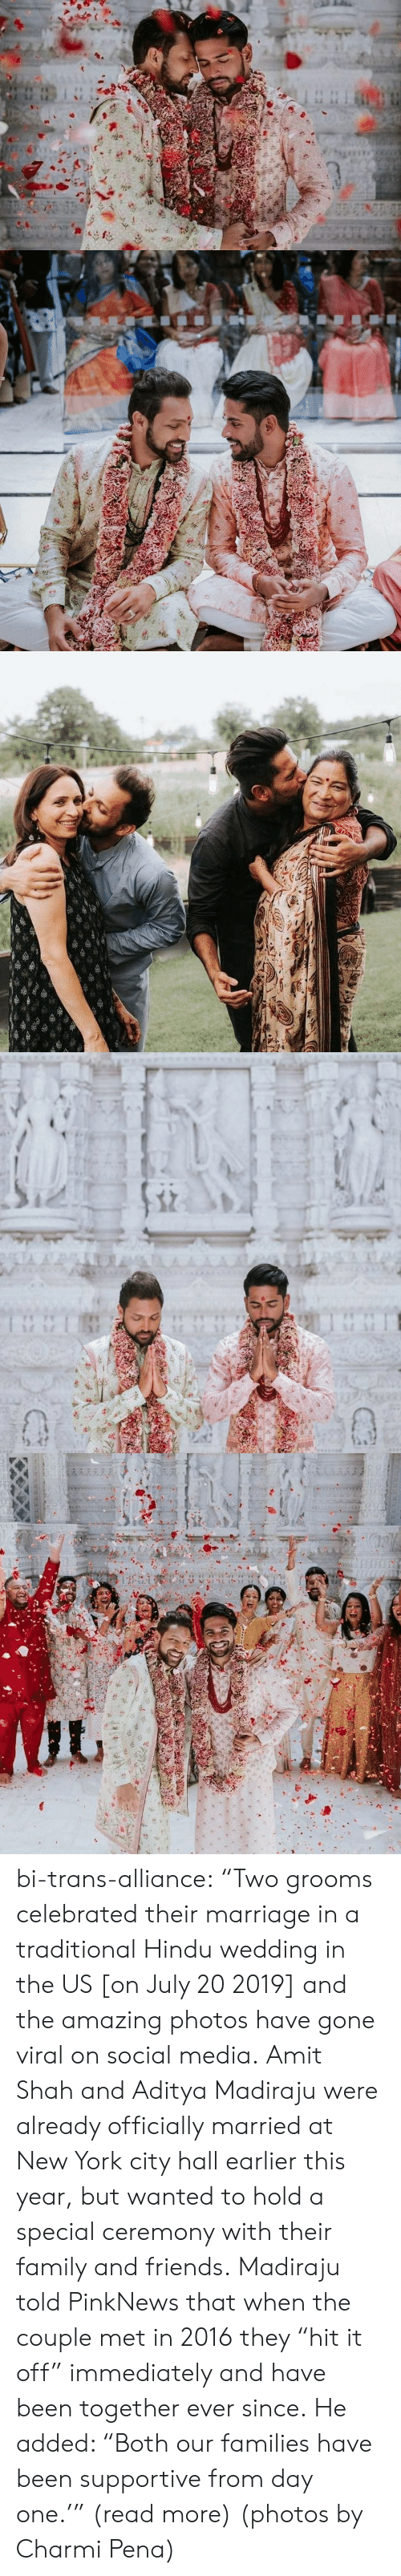 "Family, Friends, and Marriage: TA A  AAAA  1 1 bi-trans-alliance:   ""Two grooms celebrated their marriage in a traditional Hindu wedding in the US [on July 20 2019] and the amazing photos have gone viral on social media.   Amit Shah and Aditya Madiraju were already officially married at New York city hall earlier this year, but wanted to hold a special ceremony with their family and friends. Madiraju told PinkNews that when the couple met in 2016 they ""hit it off"" immediately and have been together ever since. He added: ""Both our families have been supportive from day one.'"" (read more) (photos by Charmi Pena)"